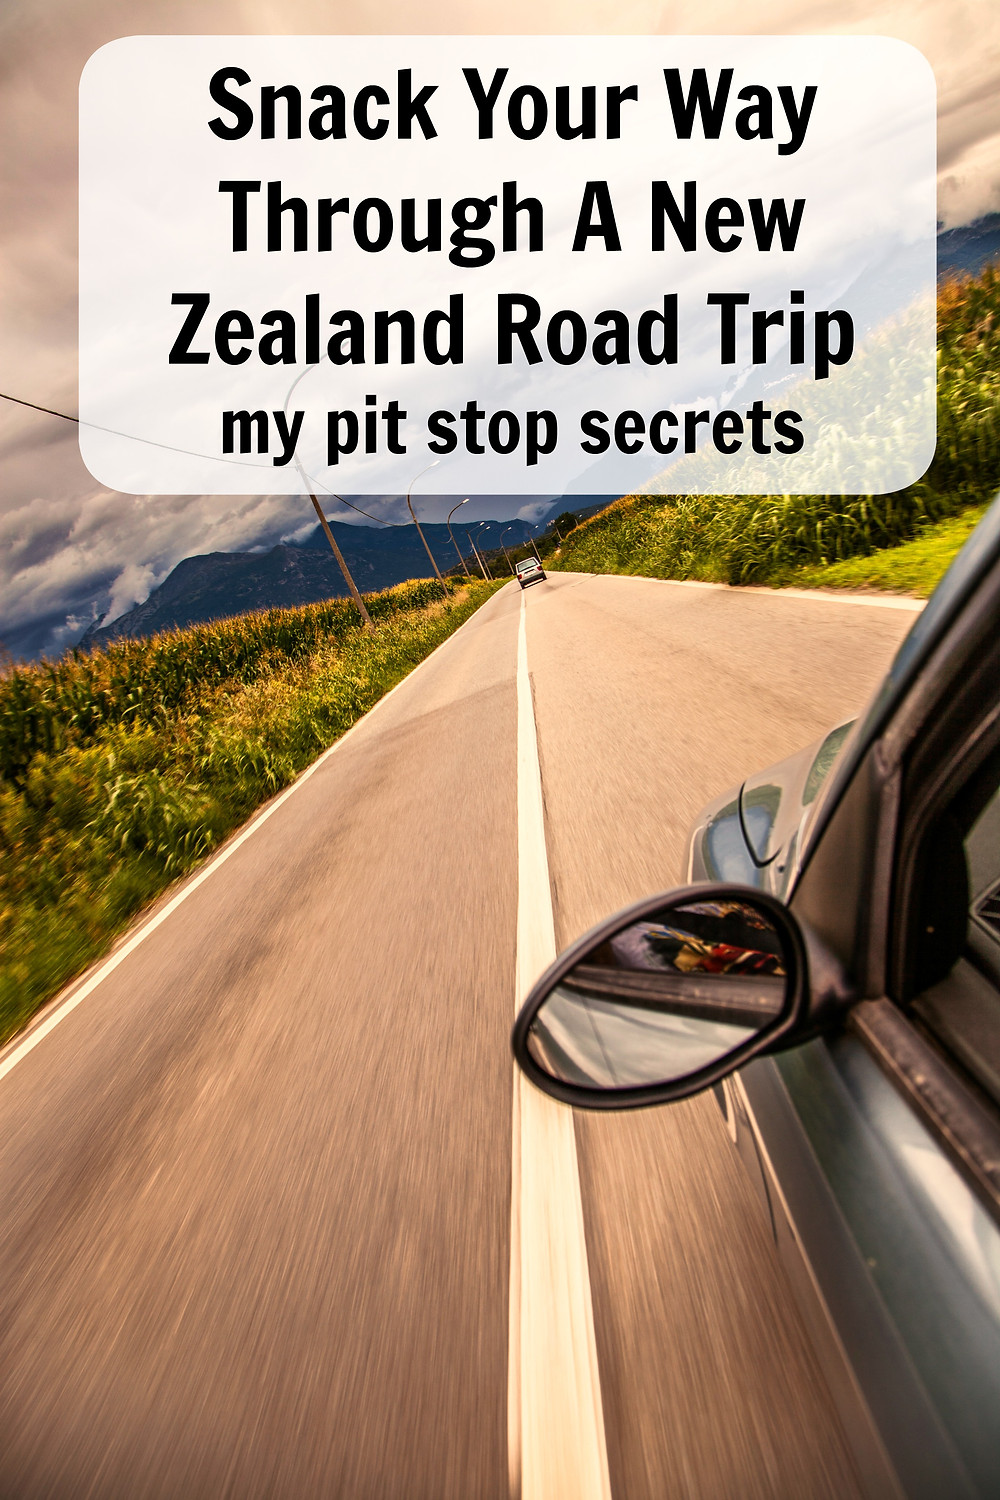 Snack your way through a NZ Rd trip